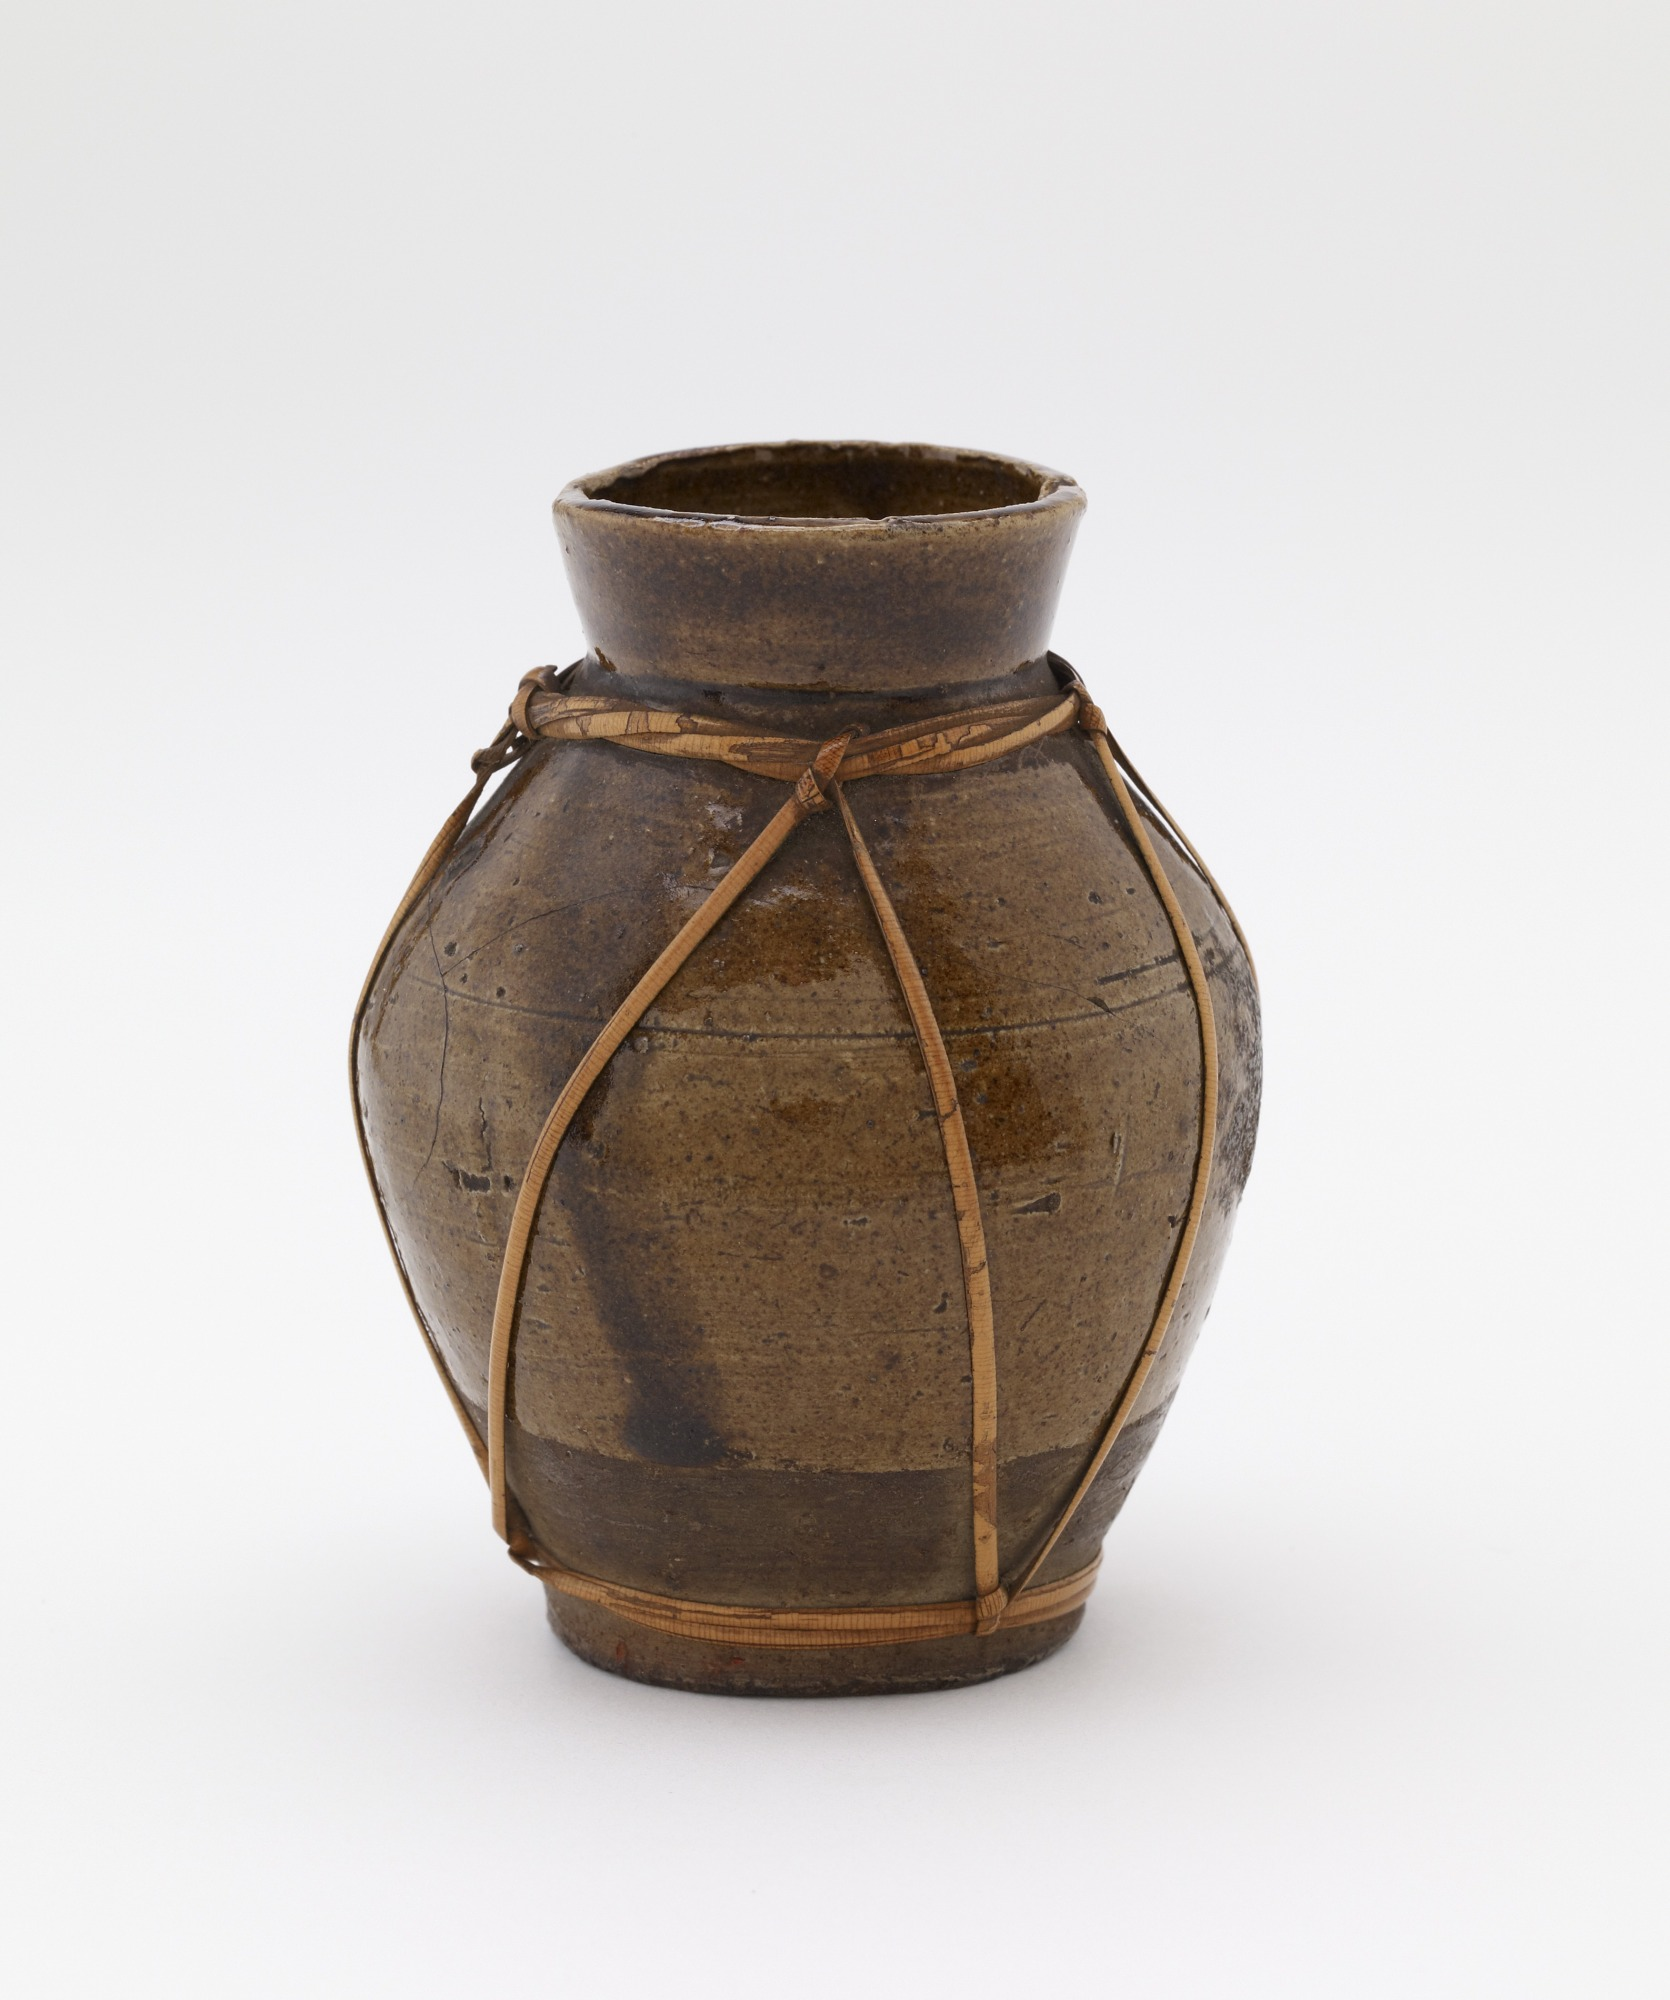 Jar with rattan harness